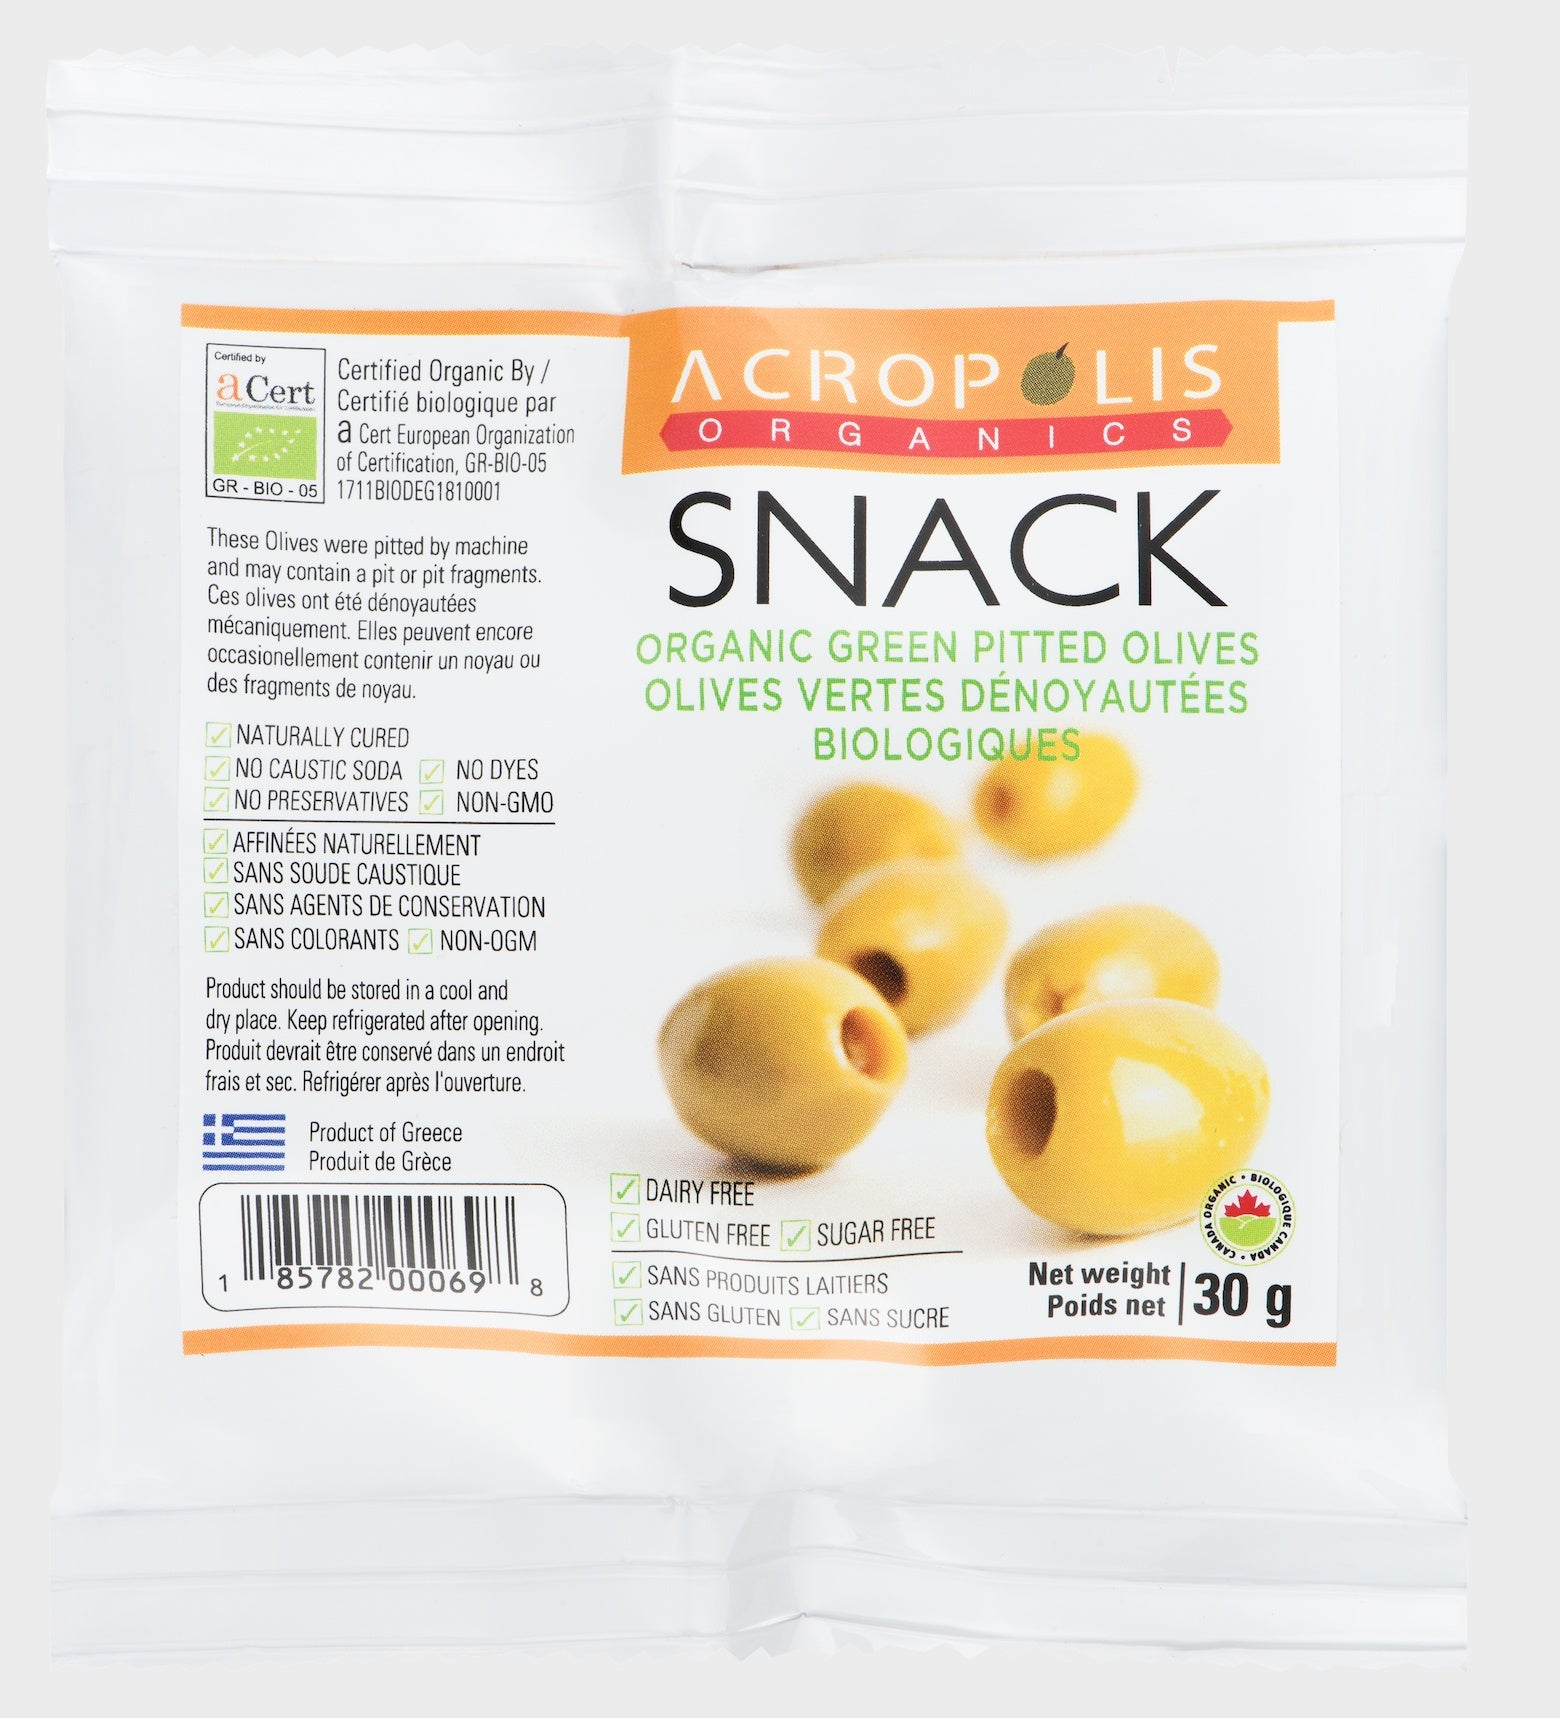 Food & Drink - Acropolis Organics - Organic Green Pitted Olives, 30g